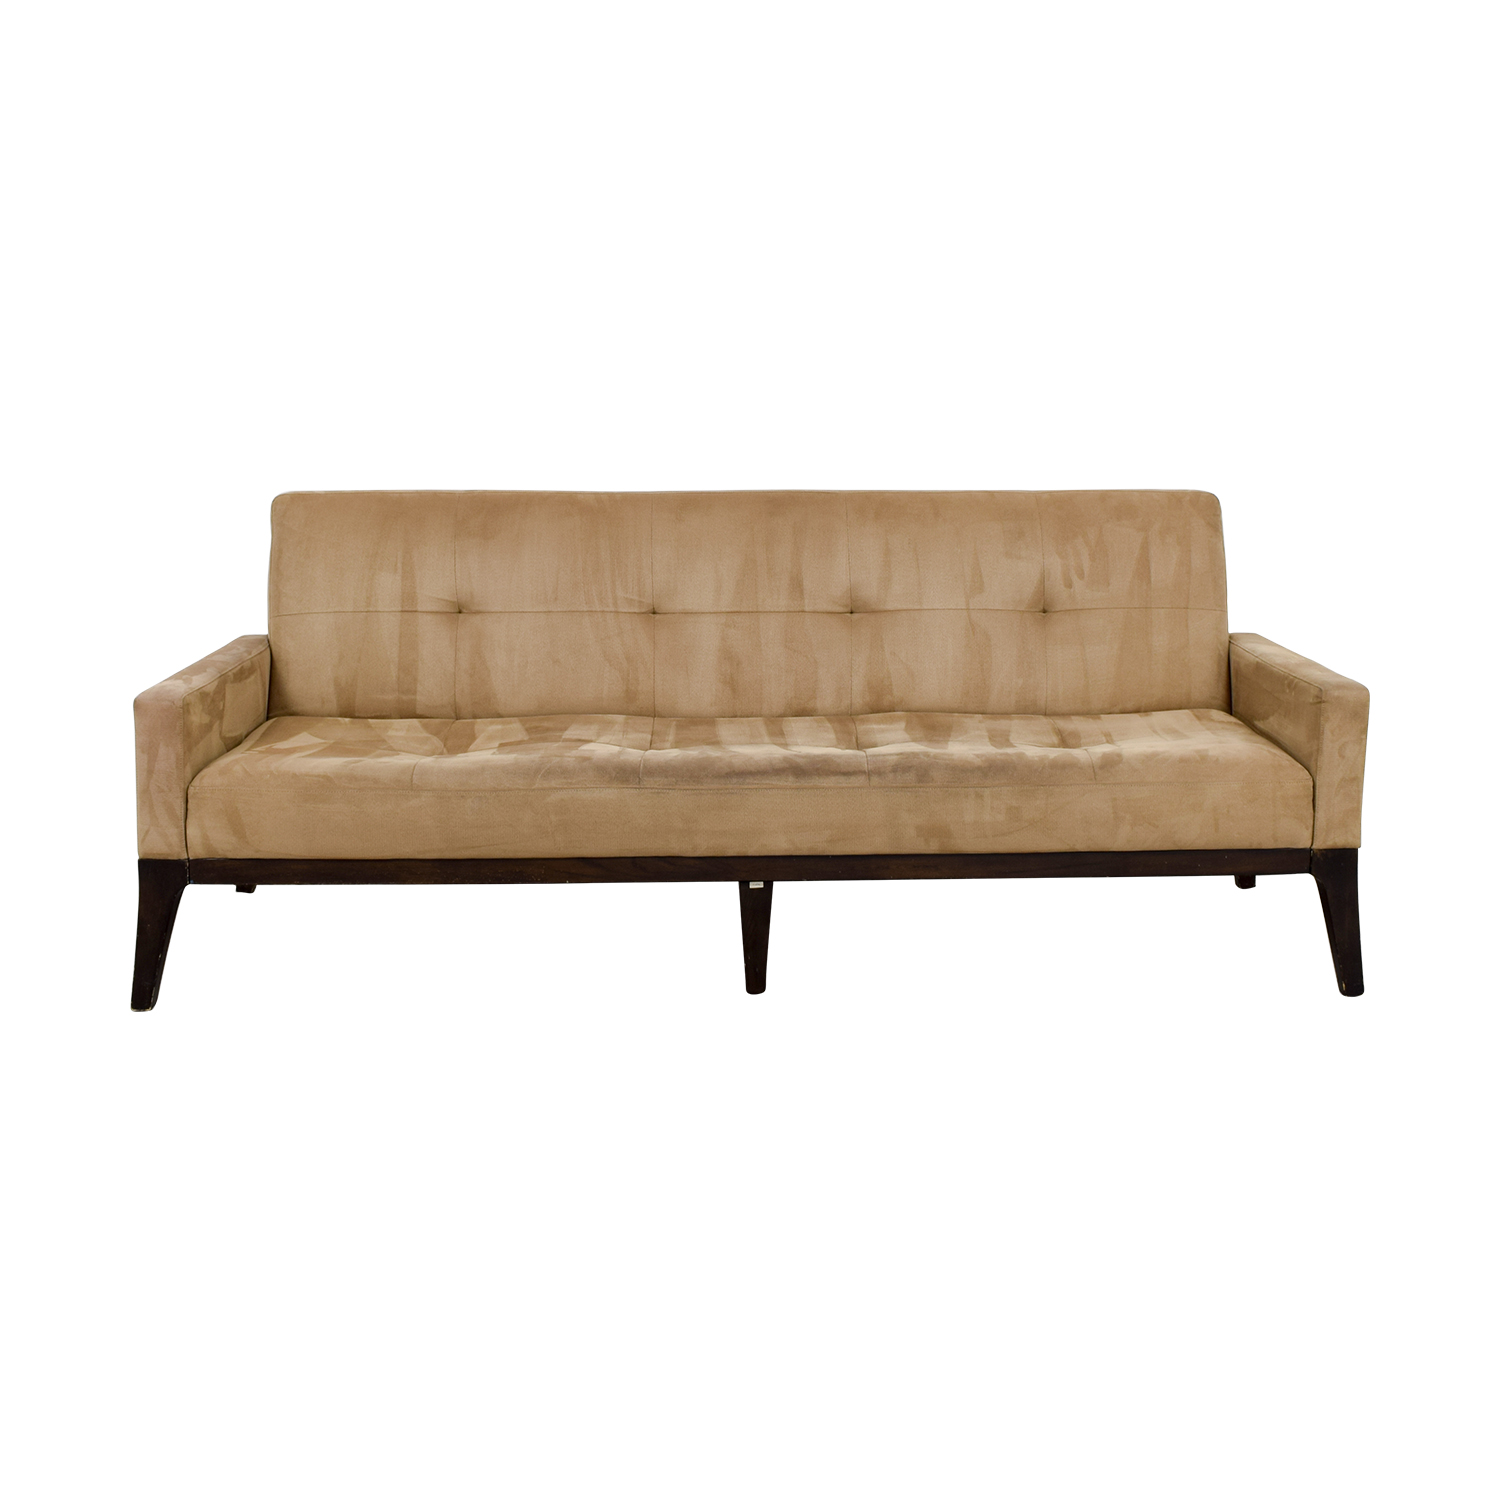 West Elm West Elm Mid-Century Tan Tufted Sofa nj